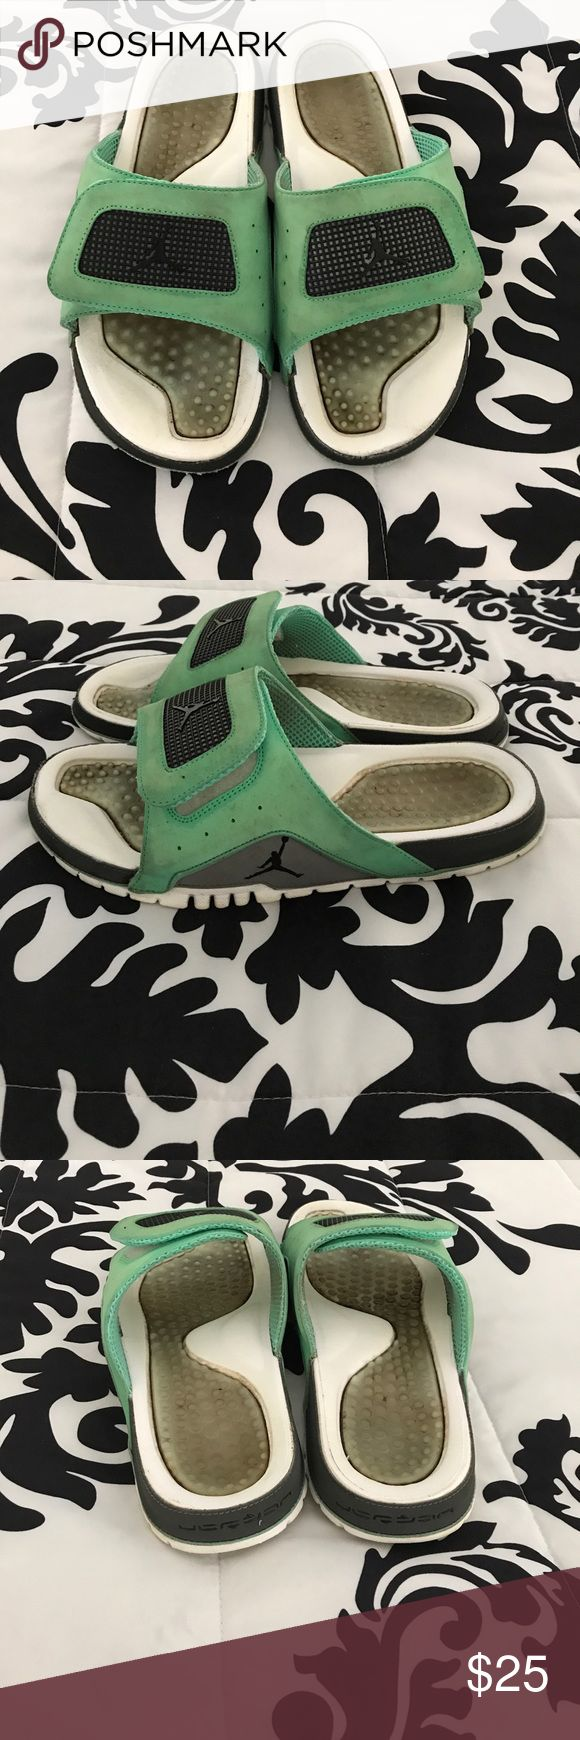 Air Jordan Slides Air Jordan Slides. They have velcro and are very comfortable. Have been used, but are still in good condition. Perfect for the beach or relaxing. Air Jordan Shoes Sandals & Flip-Flops